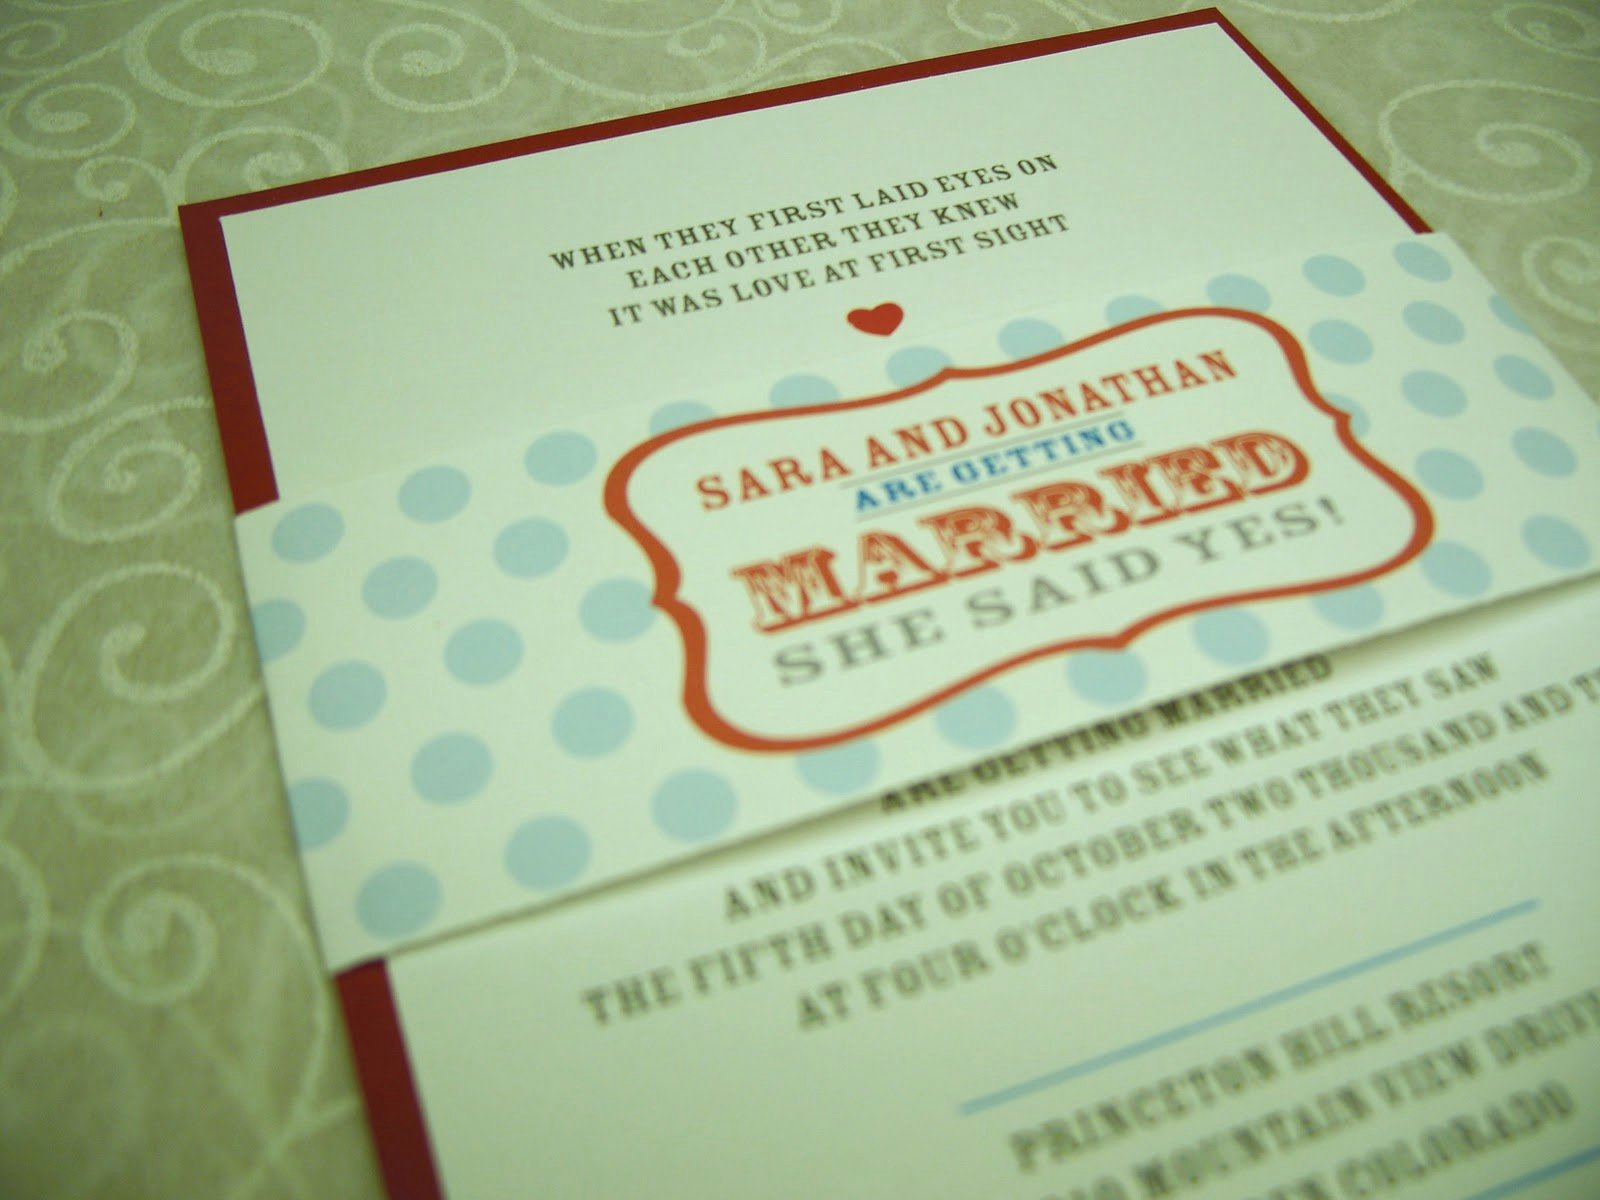 Template for Wedding Invitations Beautiful Ivy Belle Weddings Diy Wedding Projects and Ideas for